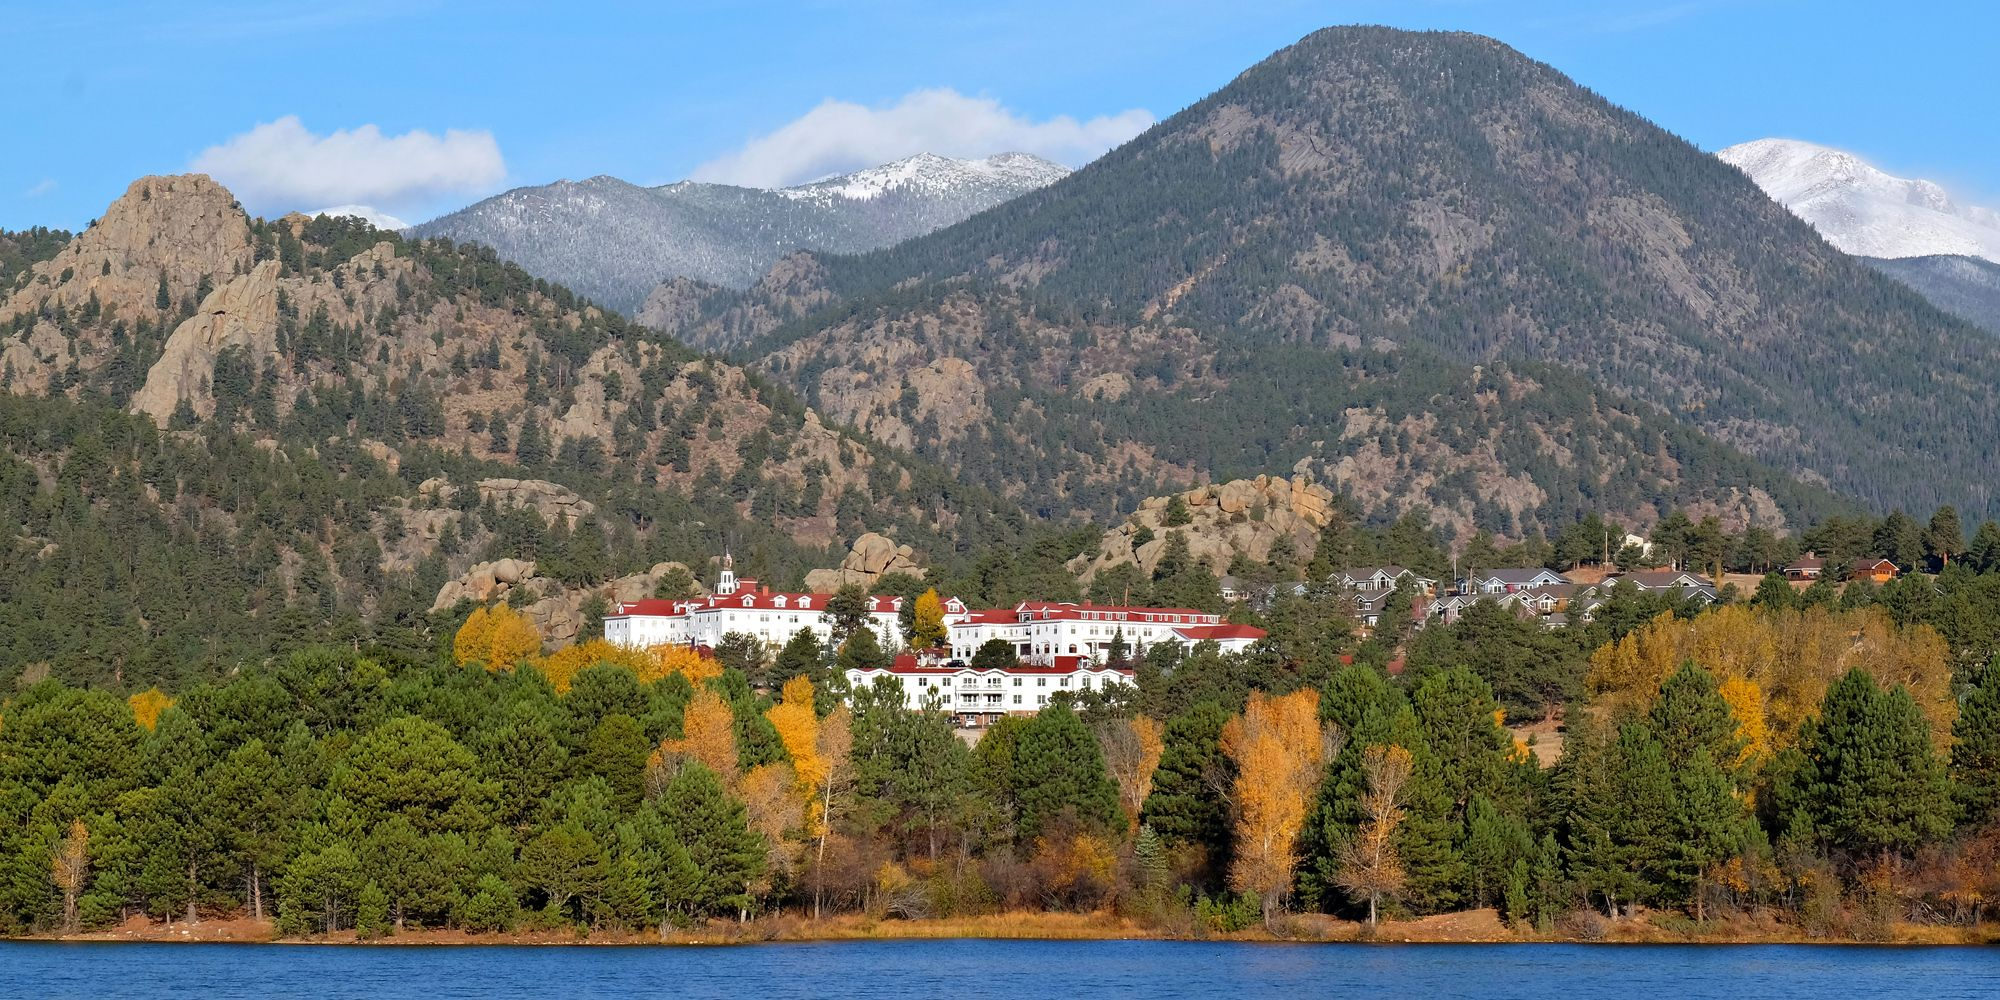 "<p>This mountainside village is home to the <a href=""https://www.tripadvisor.com/Hotel_Review-g60945-d83189-Reviews-Stanley_Hotel-Estes_Park_Colorado.html"" target=""_blank"" data-tracking-id=""recirc-text-link"">historic Stanley Hotel</a>, which was the inspiration behind Stephen King's chilling novel <em data-redactor-tag=""em"" data-verified=""redactor"">The Shining</em><span class=""redactor-invisible-space"" data-verified=""redactor"" data-redactor-tag=""span"" data-redactor-class=""redactor-invisible-space"">. Visitors can get into the Halloween spirit by attending the <a href=""https://www.tripadvisor.com/ShowUserReviews-g60945-d83189-r324898298-Stanley_Hotel-Estes_Park_Colorado.html"" target=""_blank"" data-tracking-id=""recirc-text-link"">""Shining Ball"" or a murder mystery dinner</a> hosted at the hotel. Also fun: On Halloween night, everyone in the community skips door-to-door visits and heads to Main Street for trick-or-treating.</span></p><p><span class=""redactor-invisible-space"" data-verified=""redactor"" data-redactor-tag=""span"" data-redactor-class=""redactor-invisible-space""><a href=""https://www.tripadvisor.com/Tourism-g60945-Estes_Park_Colorado-Vacations.html"" target=""_blank"" data-tracking-id=""recirc-text-link""><em data-redactor-tag=""em"" data-verified=""redactor"">Plan your trip to Estes Park at TripAdvisor.</em></a></span></p>"